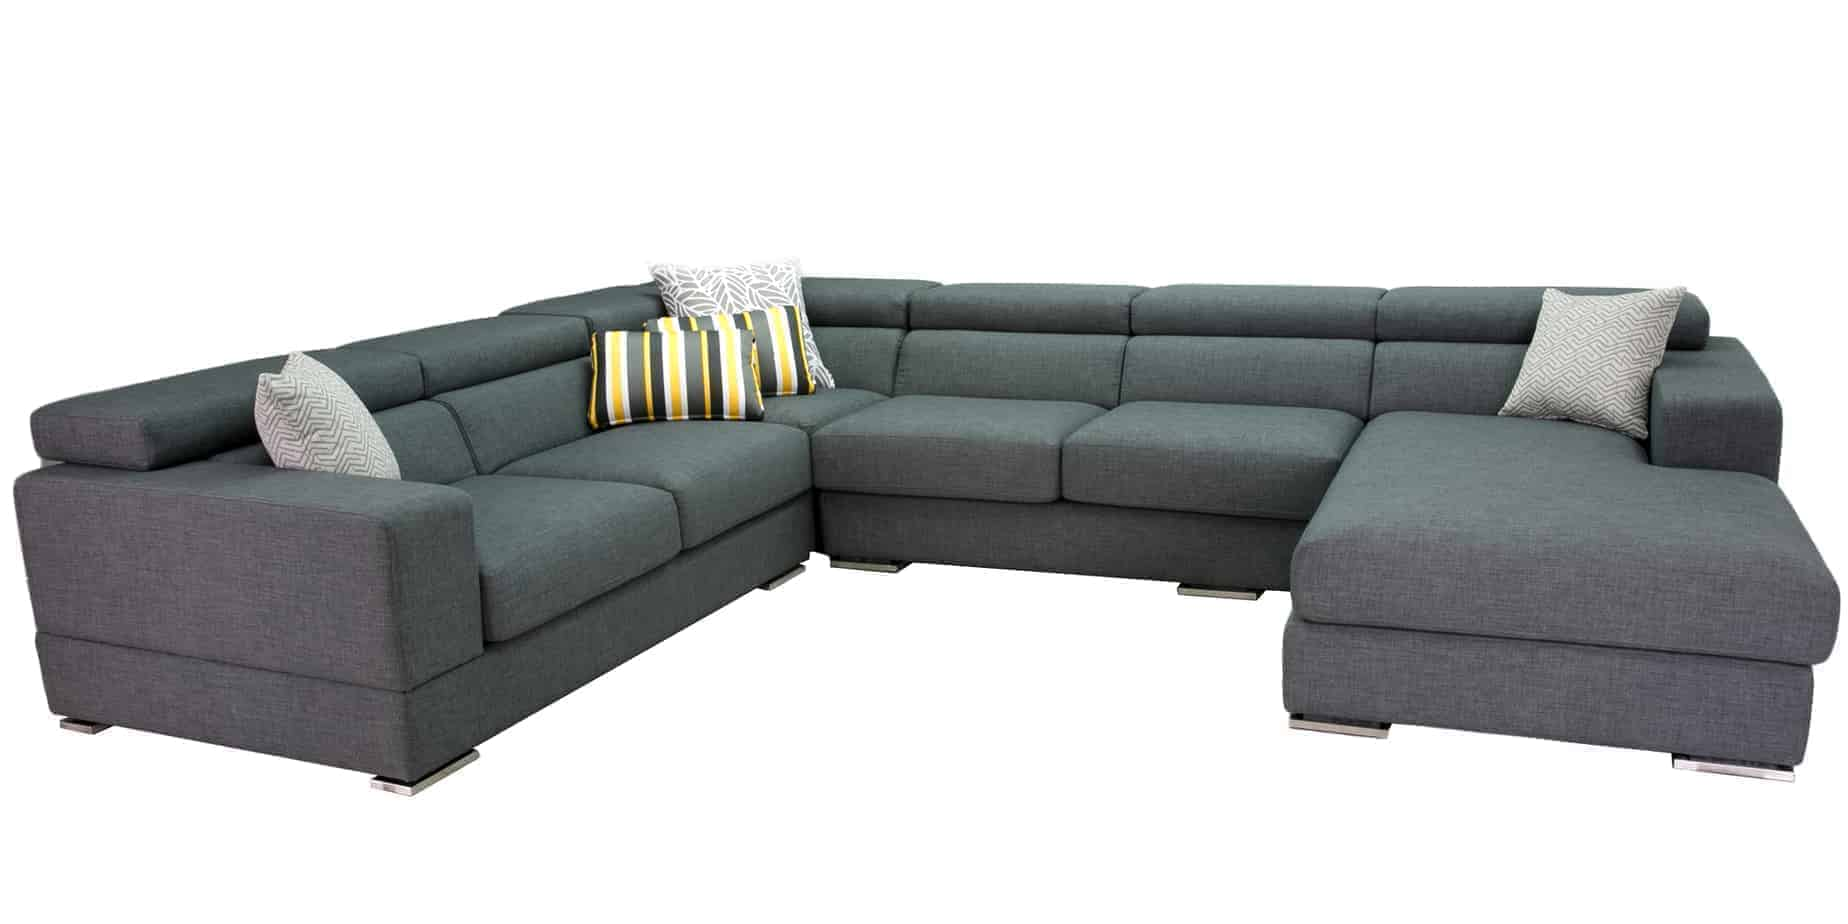 Tennyson Plush Chaise Corner Modular Lounge buy direct from our Sydney Furniture Factory